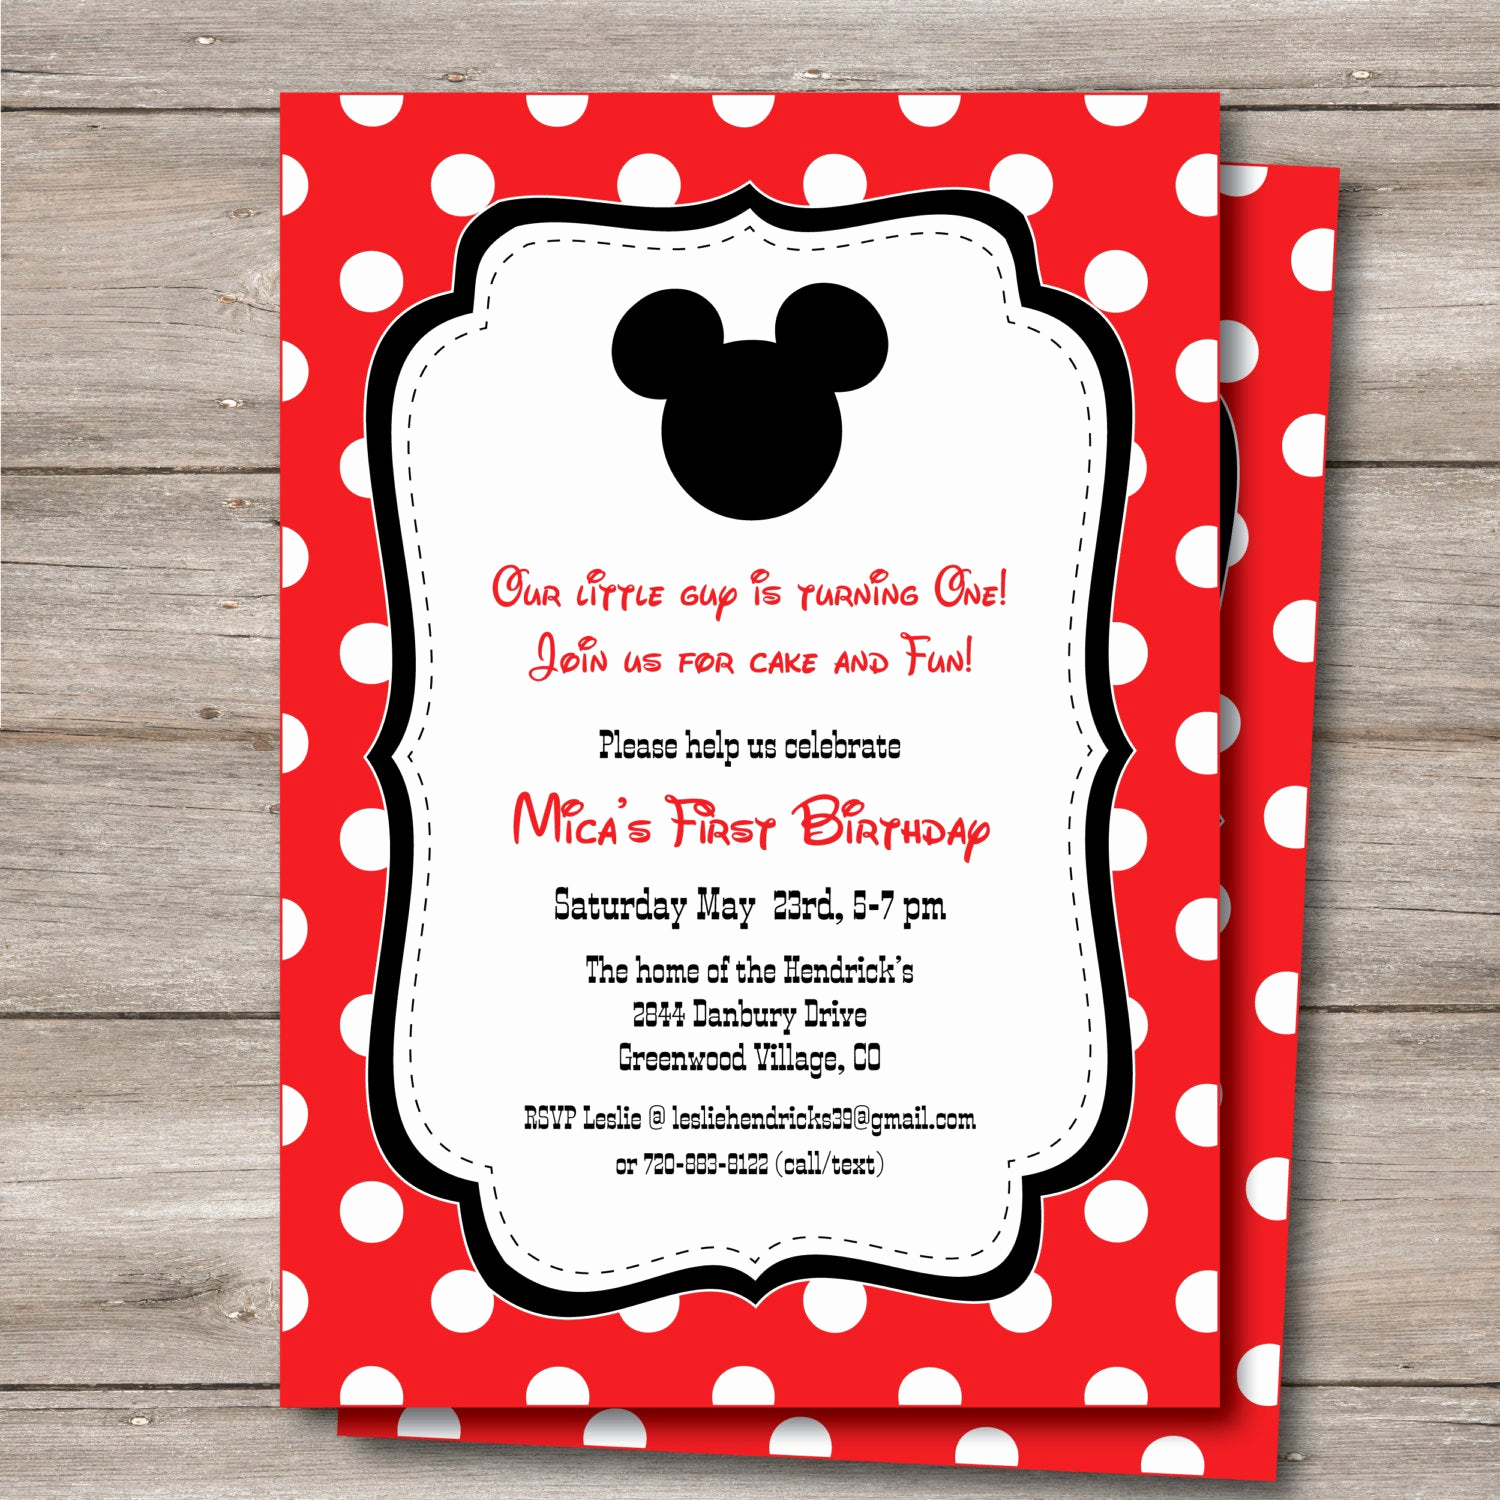 Mickey Mouse Baby Shower Invitation Awesome Mickey Mouse Invitation with Editable Text to Print at Home